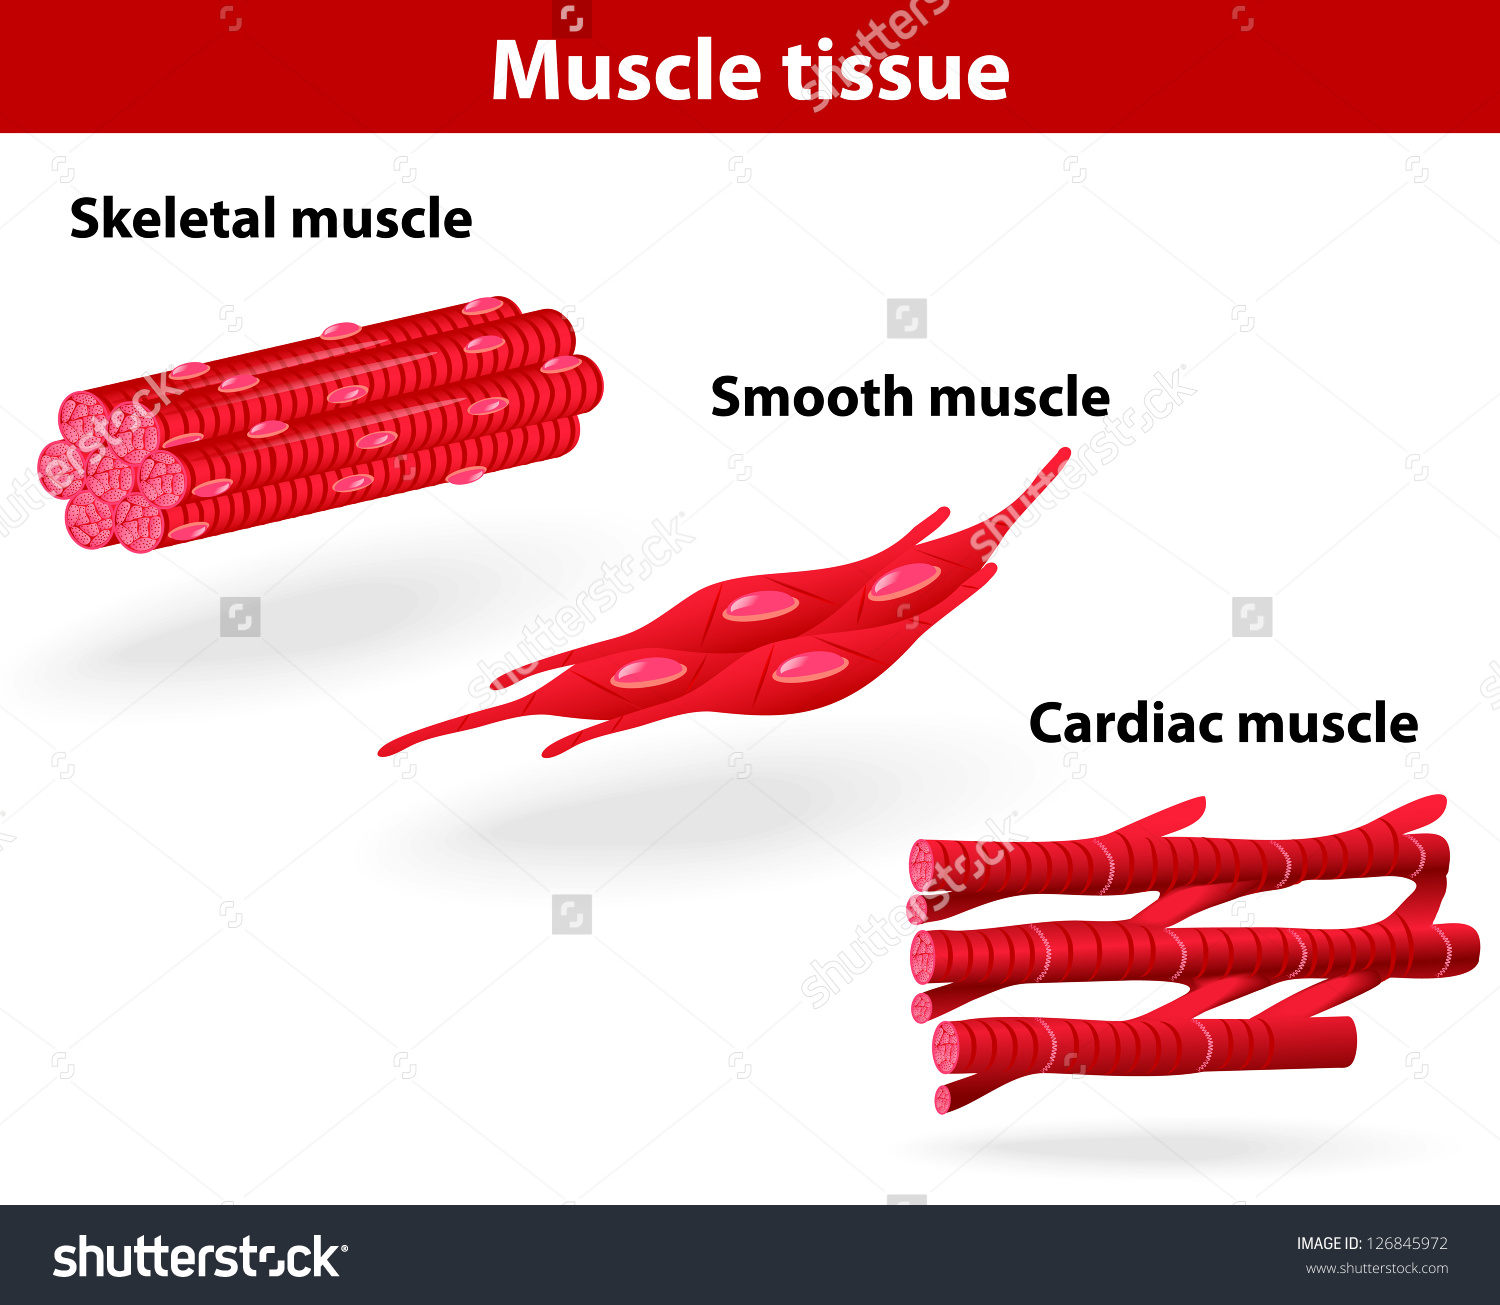 29 when a skeletal muscle fatigues what happens to the contractile force over time Answer to fatigue in isolated skeletal muscle1 when a skeletal muscle fatigues, what happens to the contractile what happens to the contractile force over time 2.